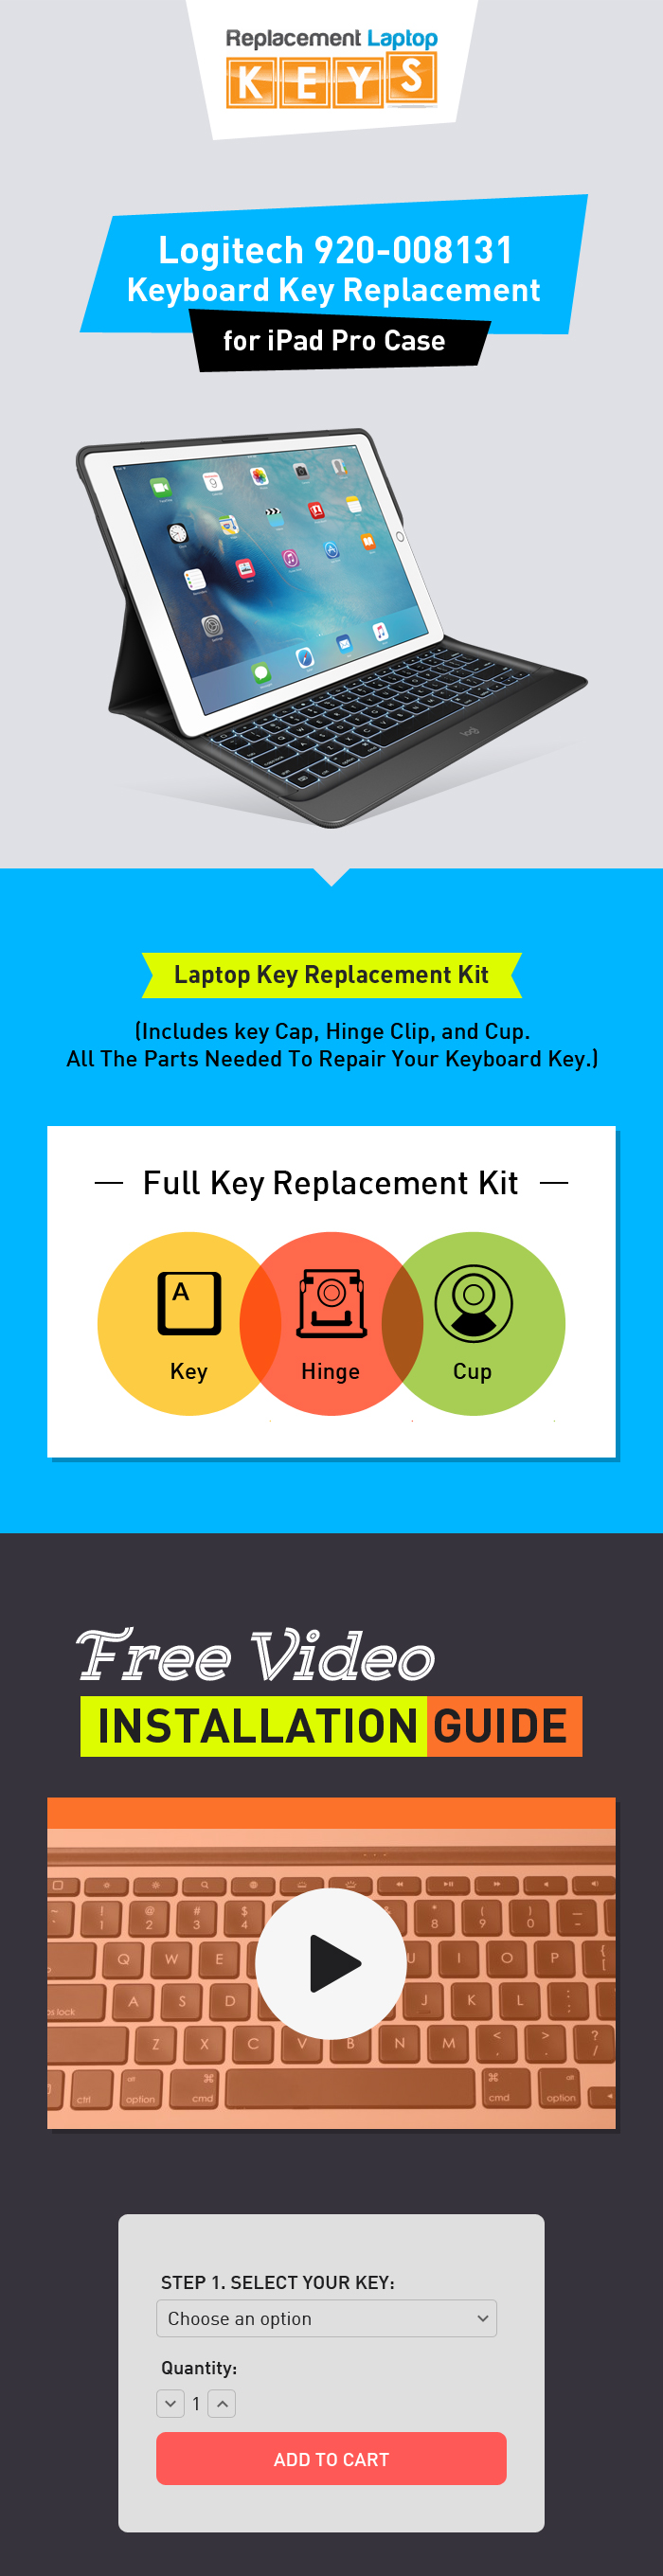 Logitech 920-008131 Laptop Key Replacement